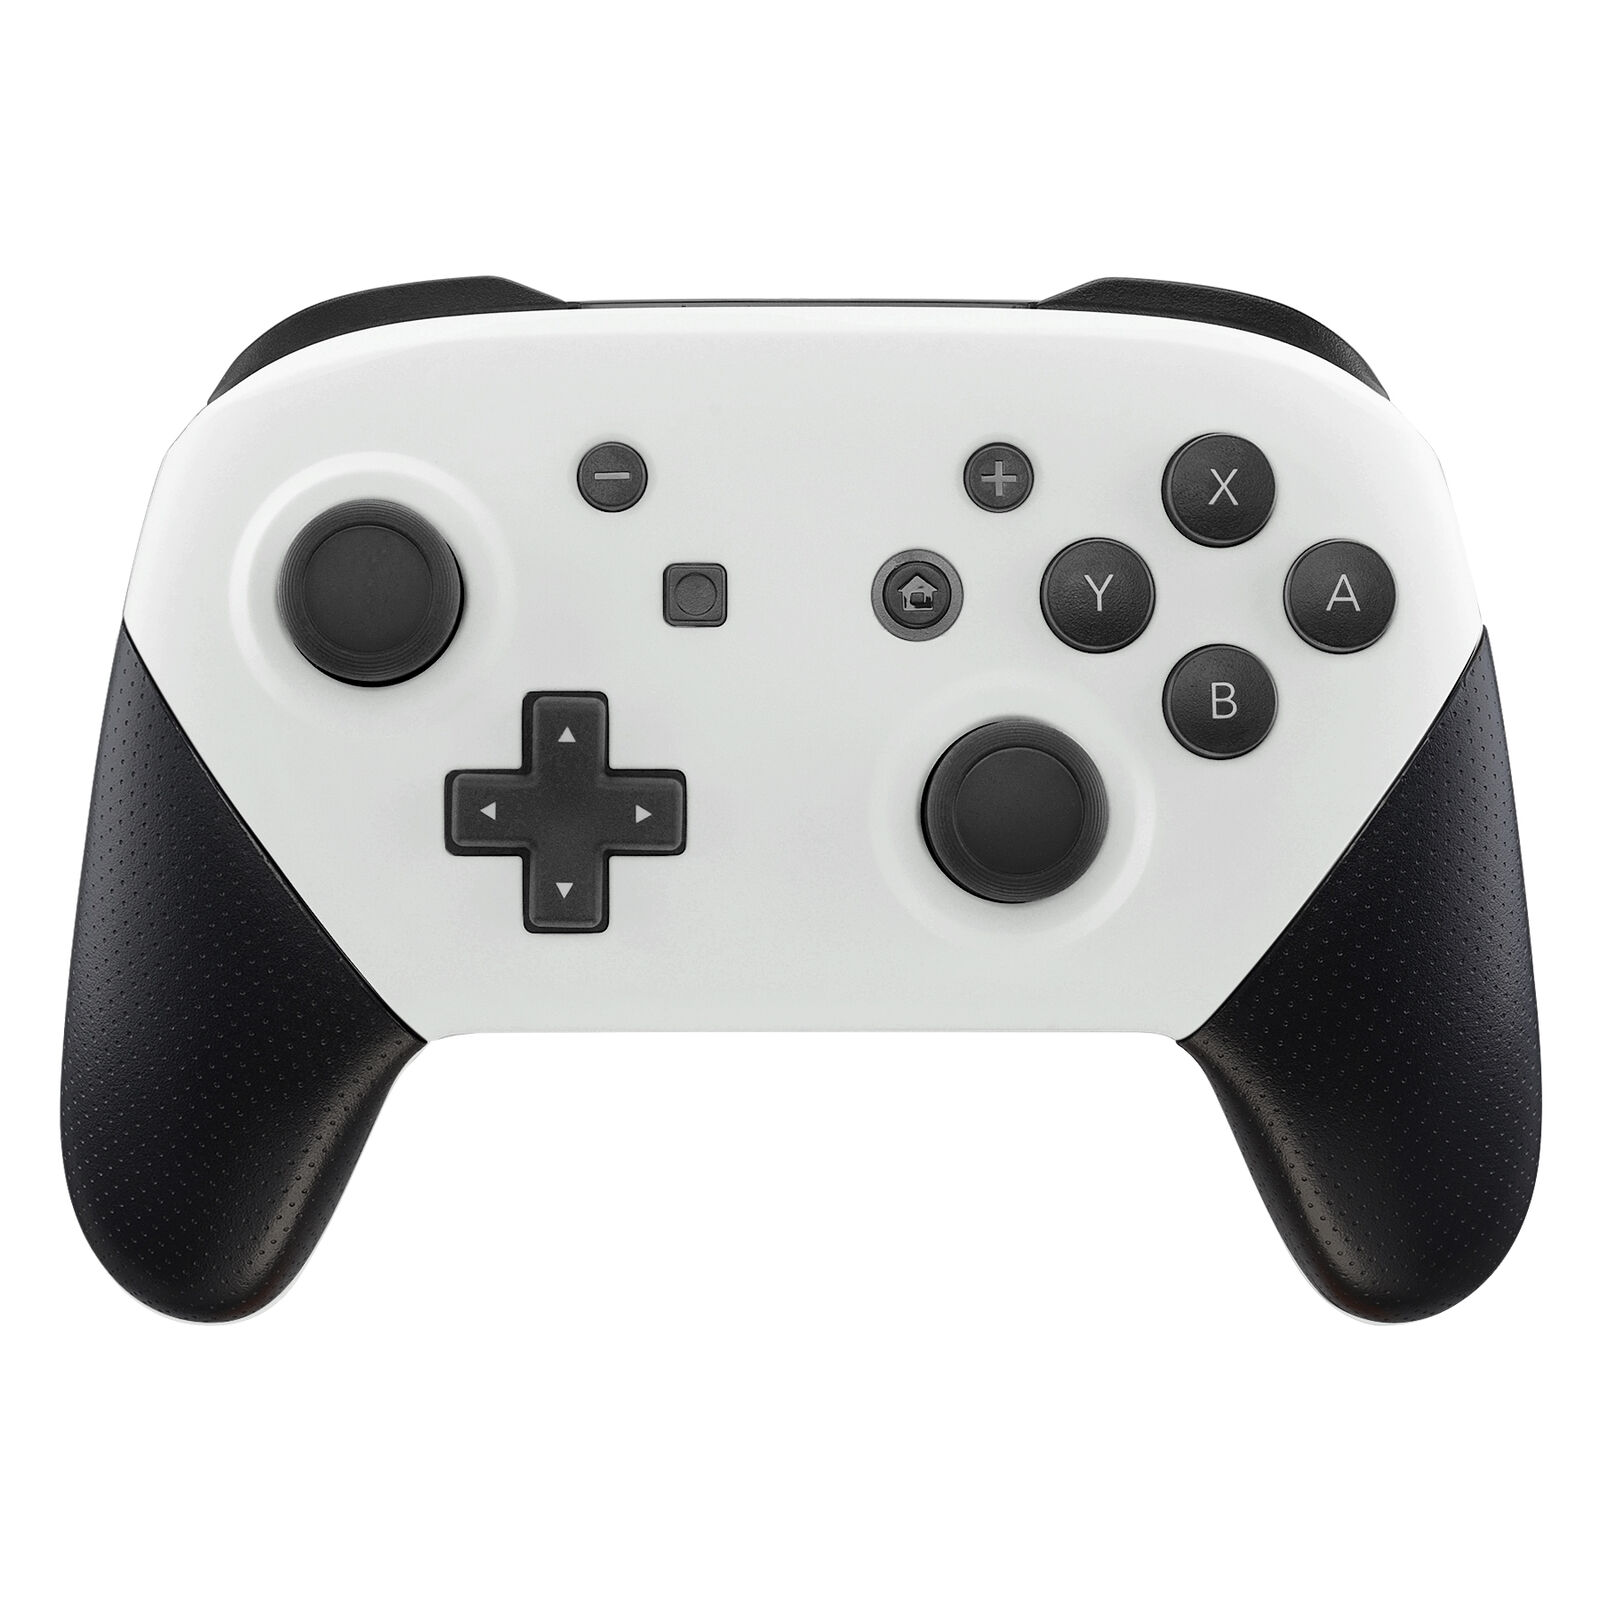 Nintendo Switch Pro Controller Black and Matte White Faceplate